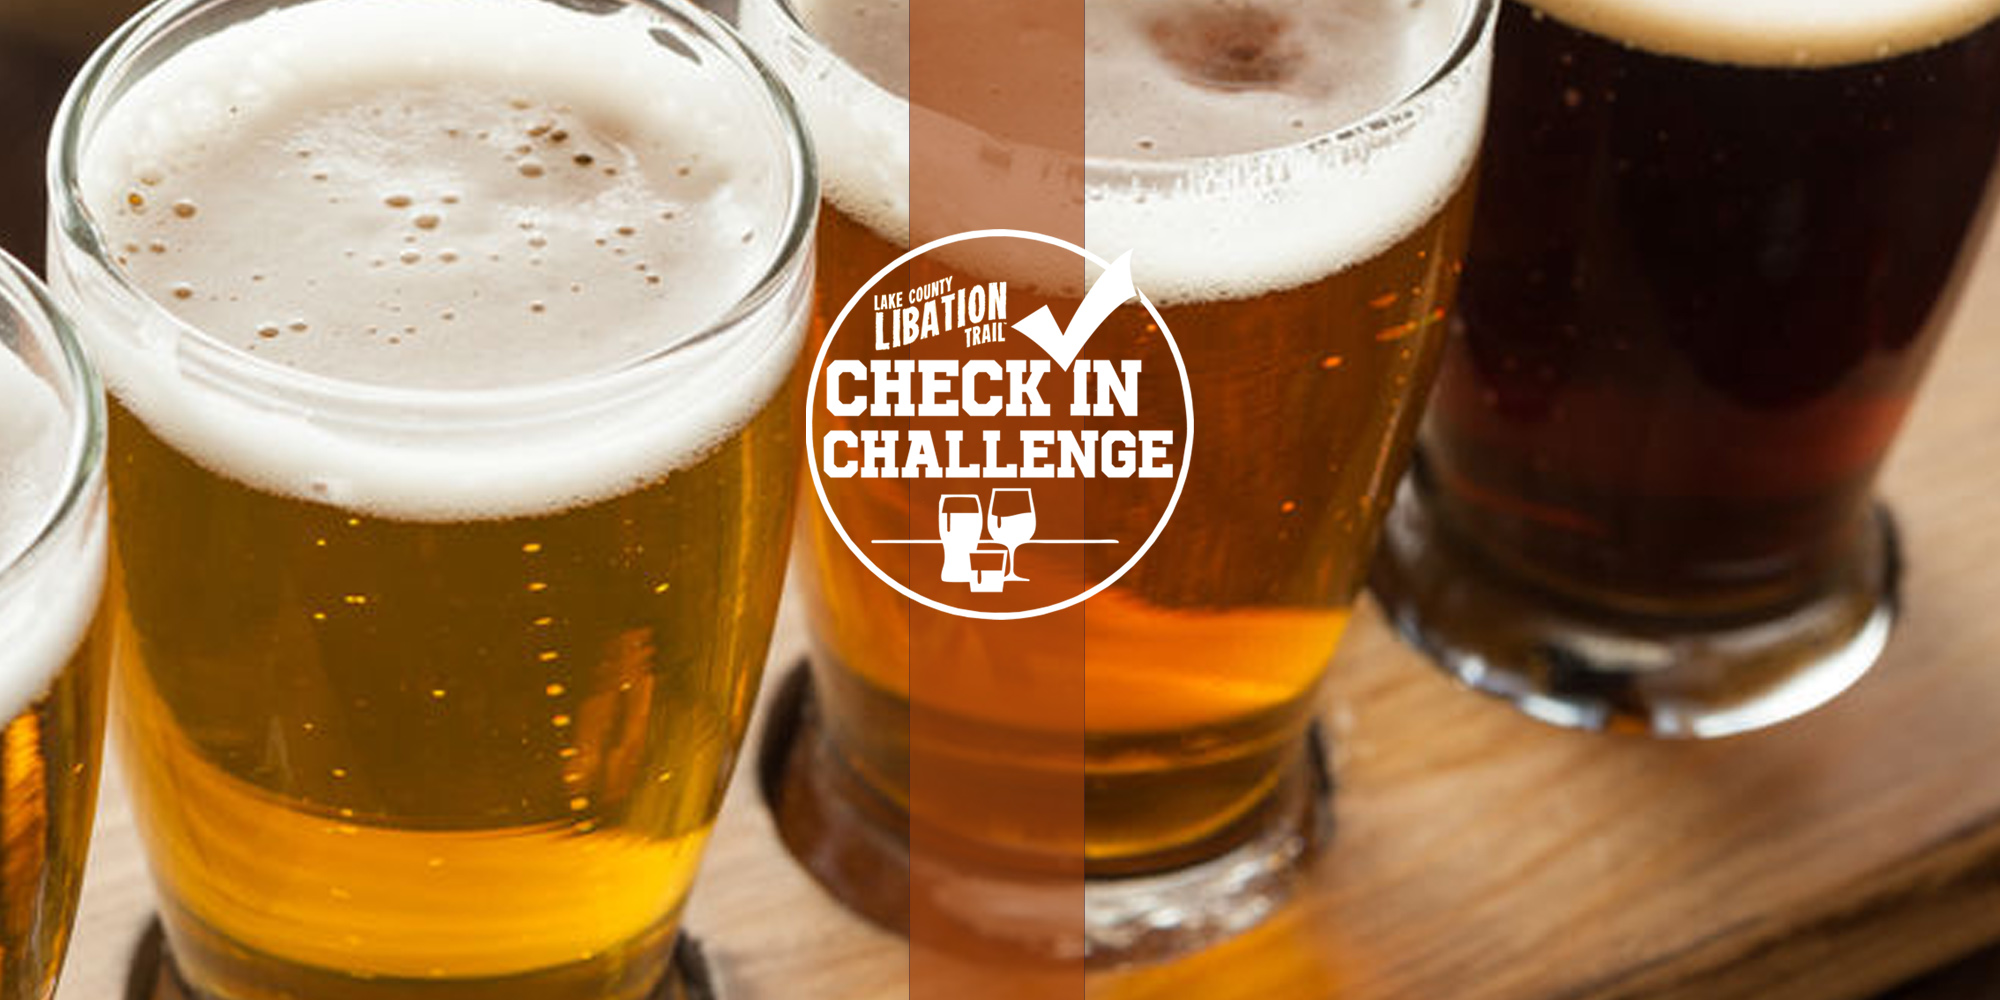 Lake County Libation Trail Month / Check-in Challenge